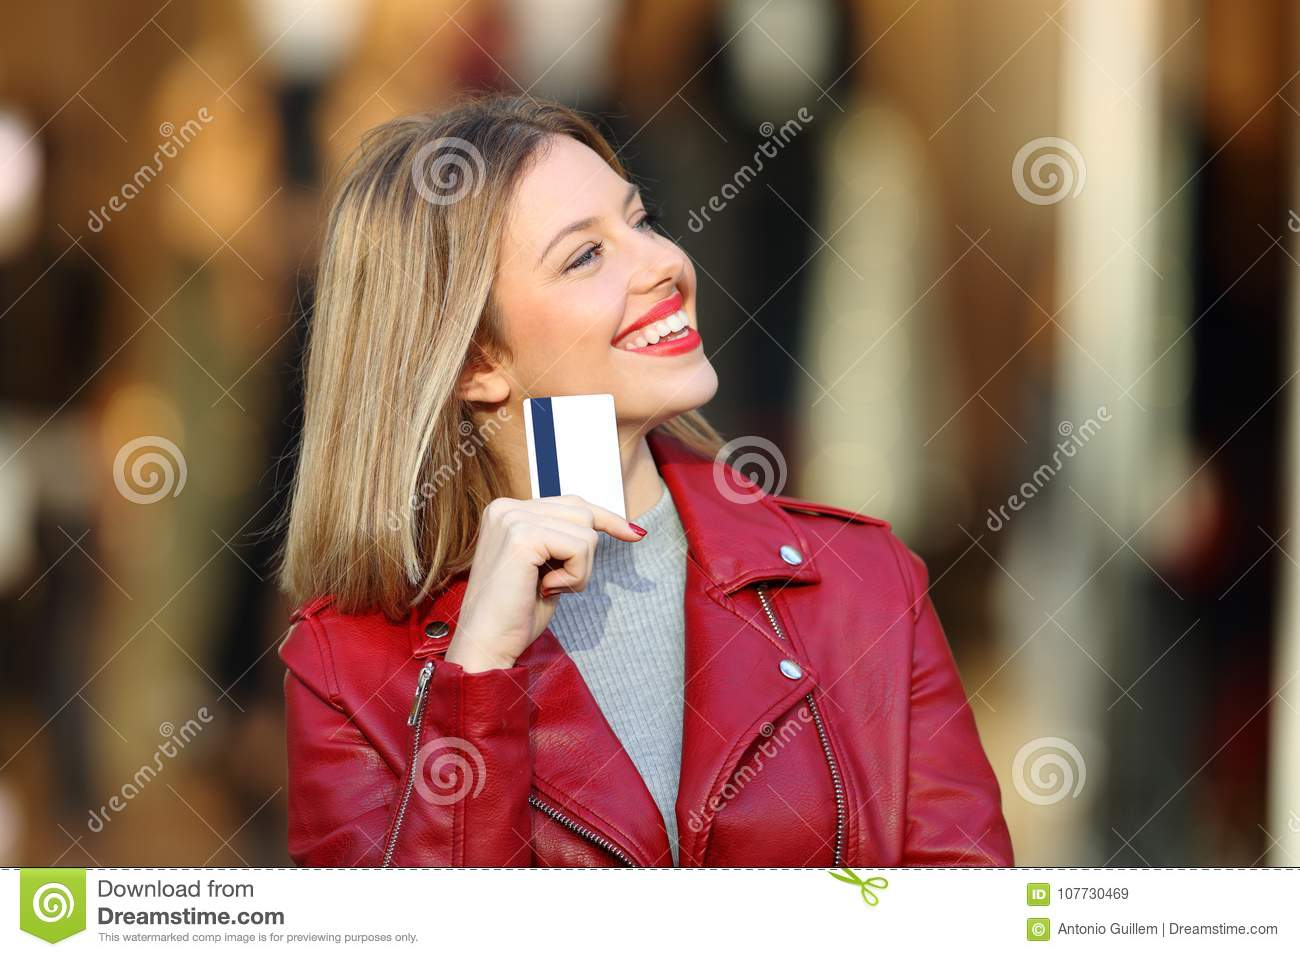 Shopper wondering what to buy holding a credit card